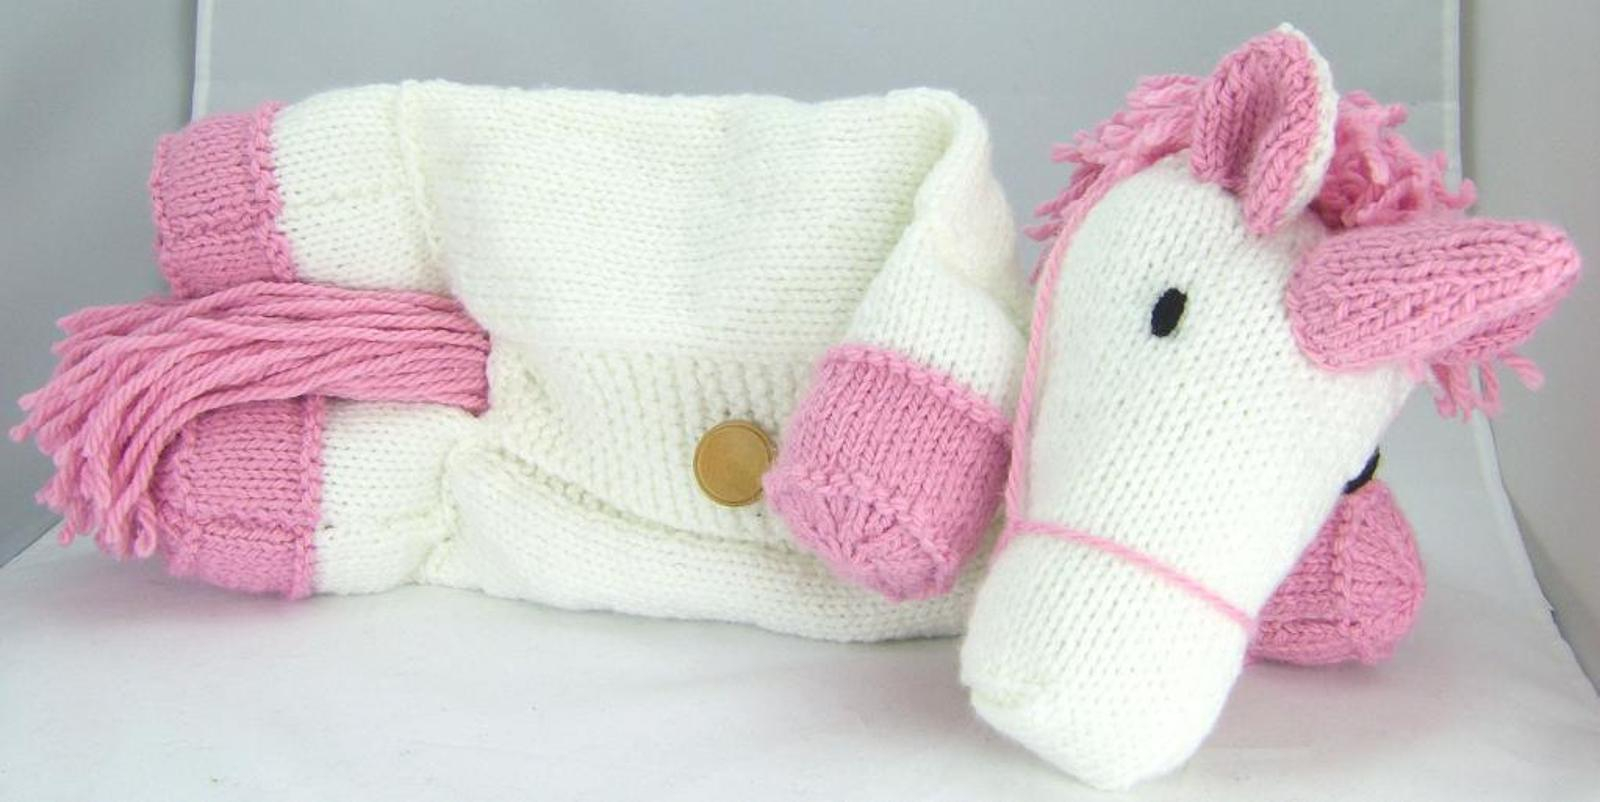 Free Cushion Cover Knitting Pattern Unicorn Knitting Patterns 12 Magical Unicorn Patterns To Knit